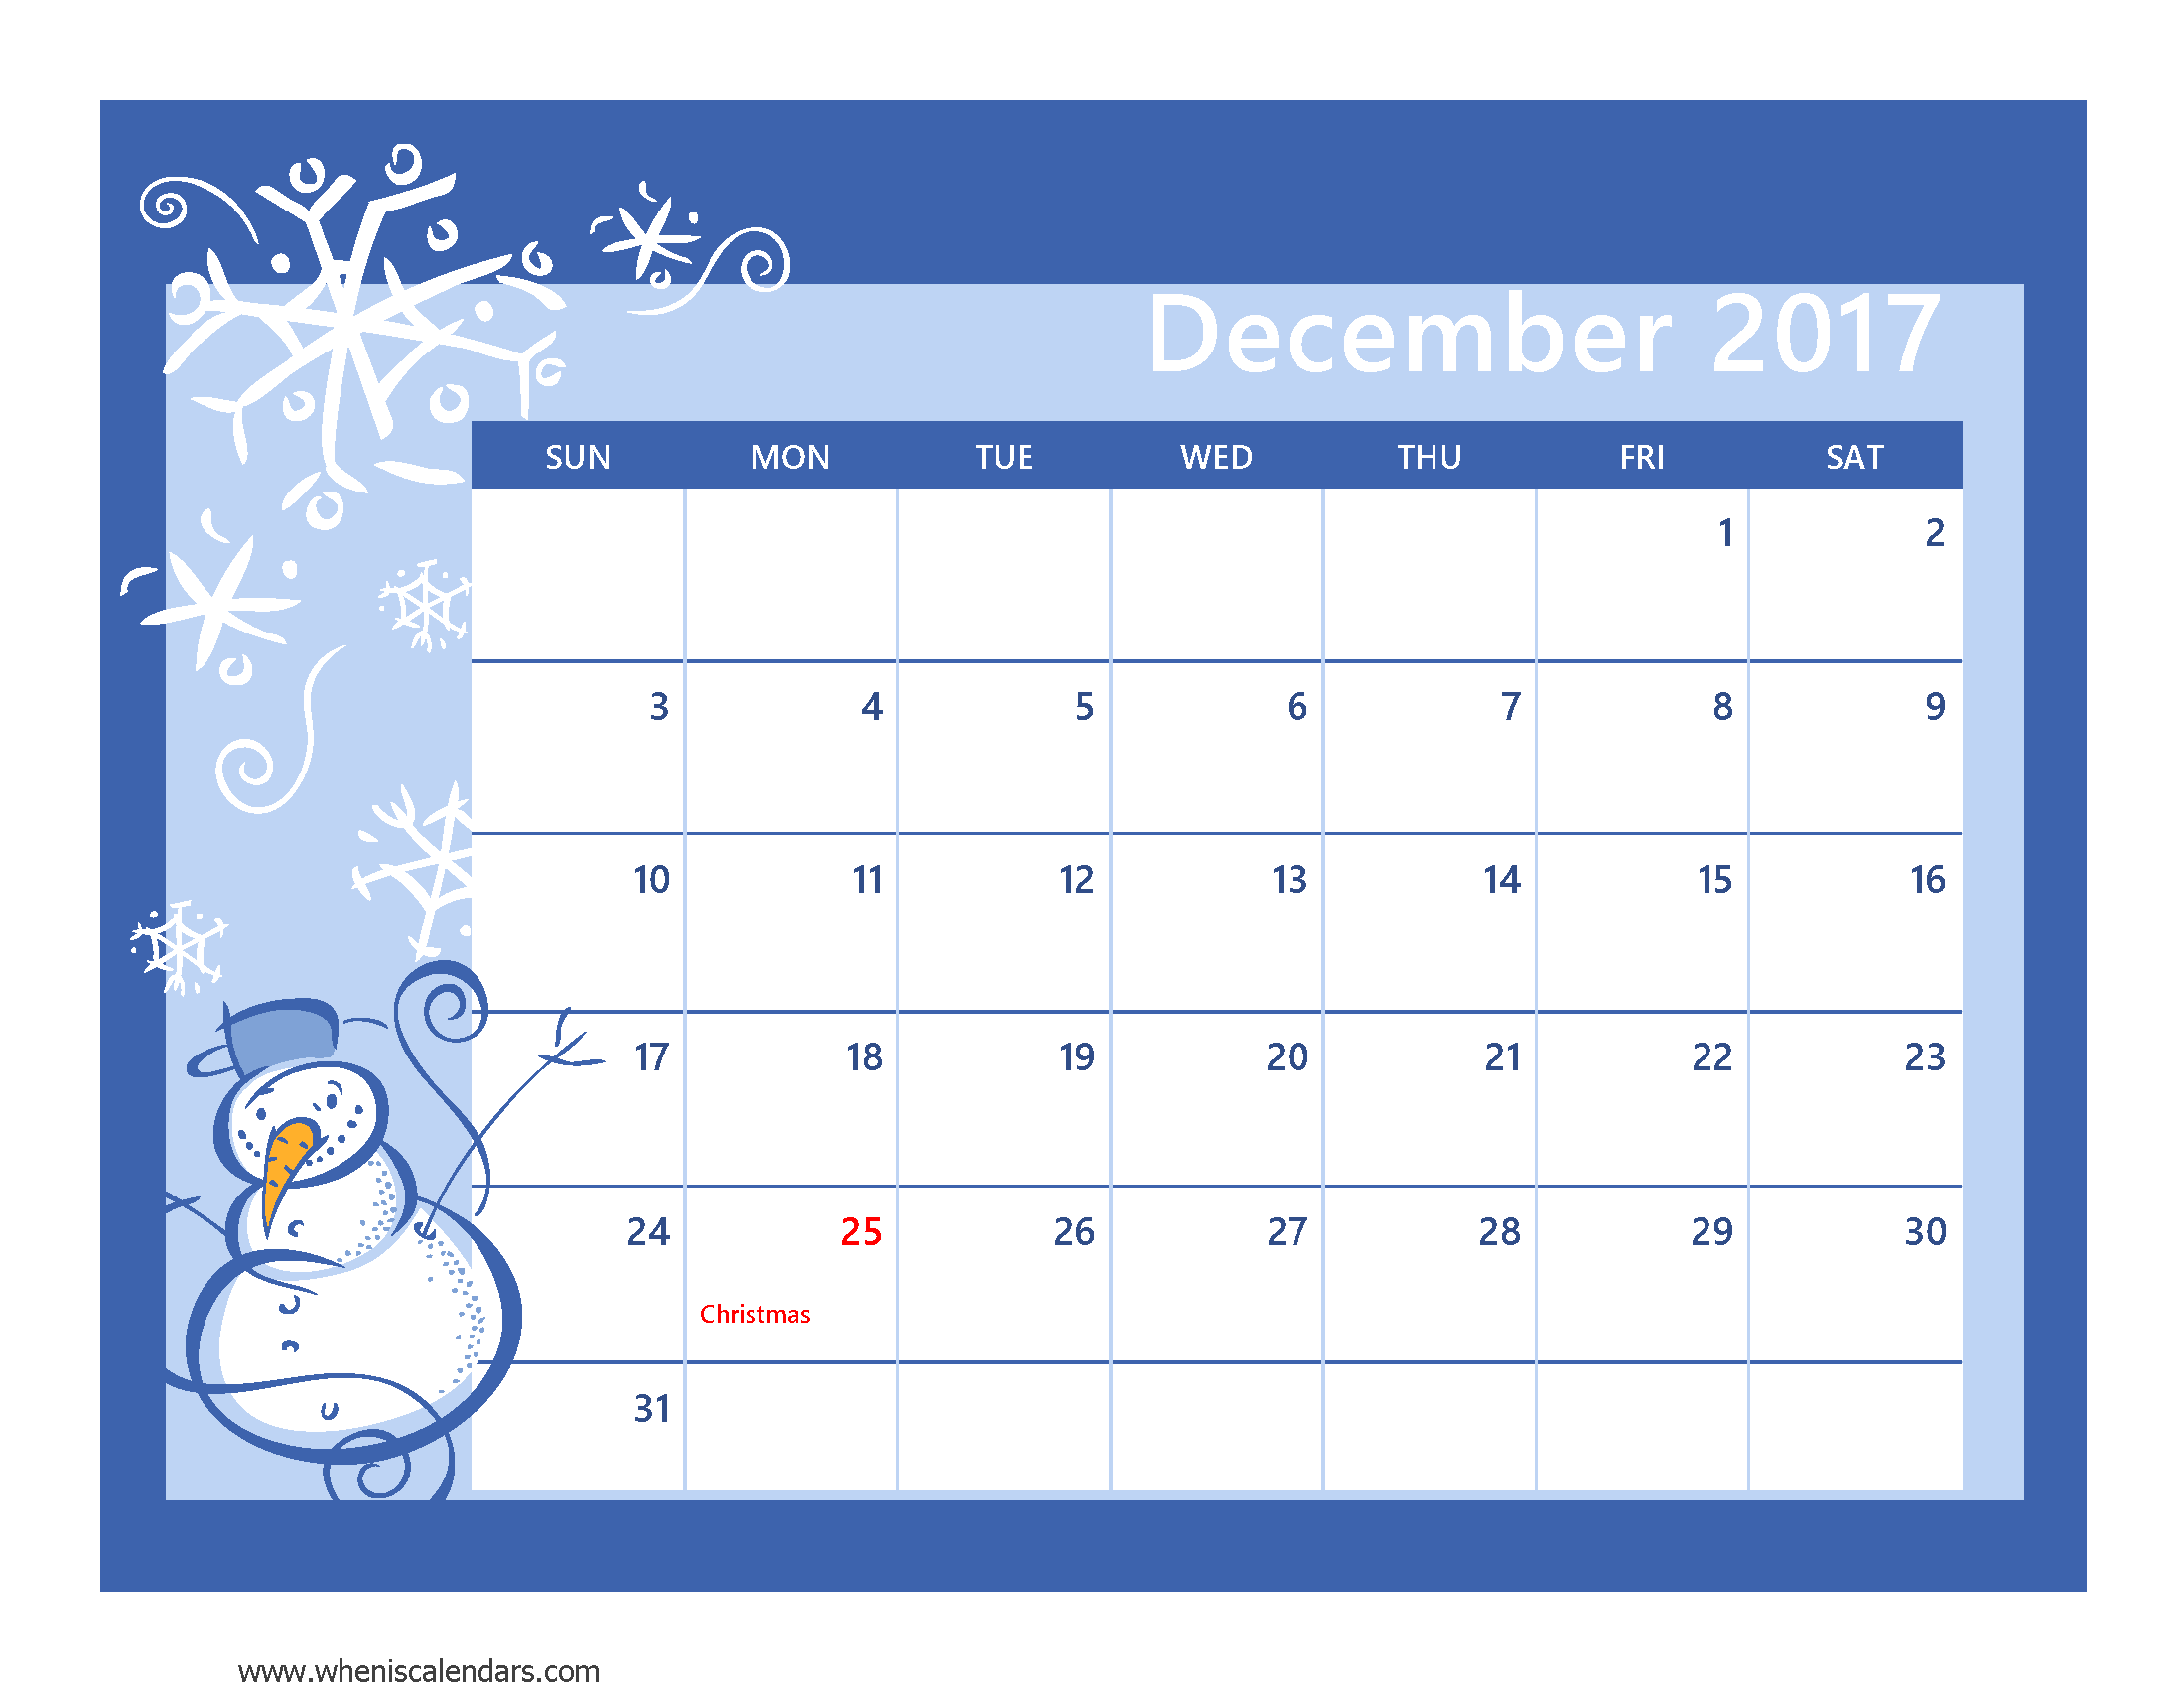 December Kids Calendar : Printable december when is calendars yahoo image